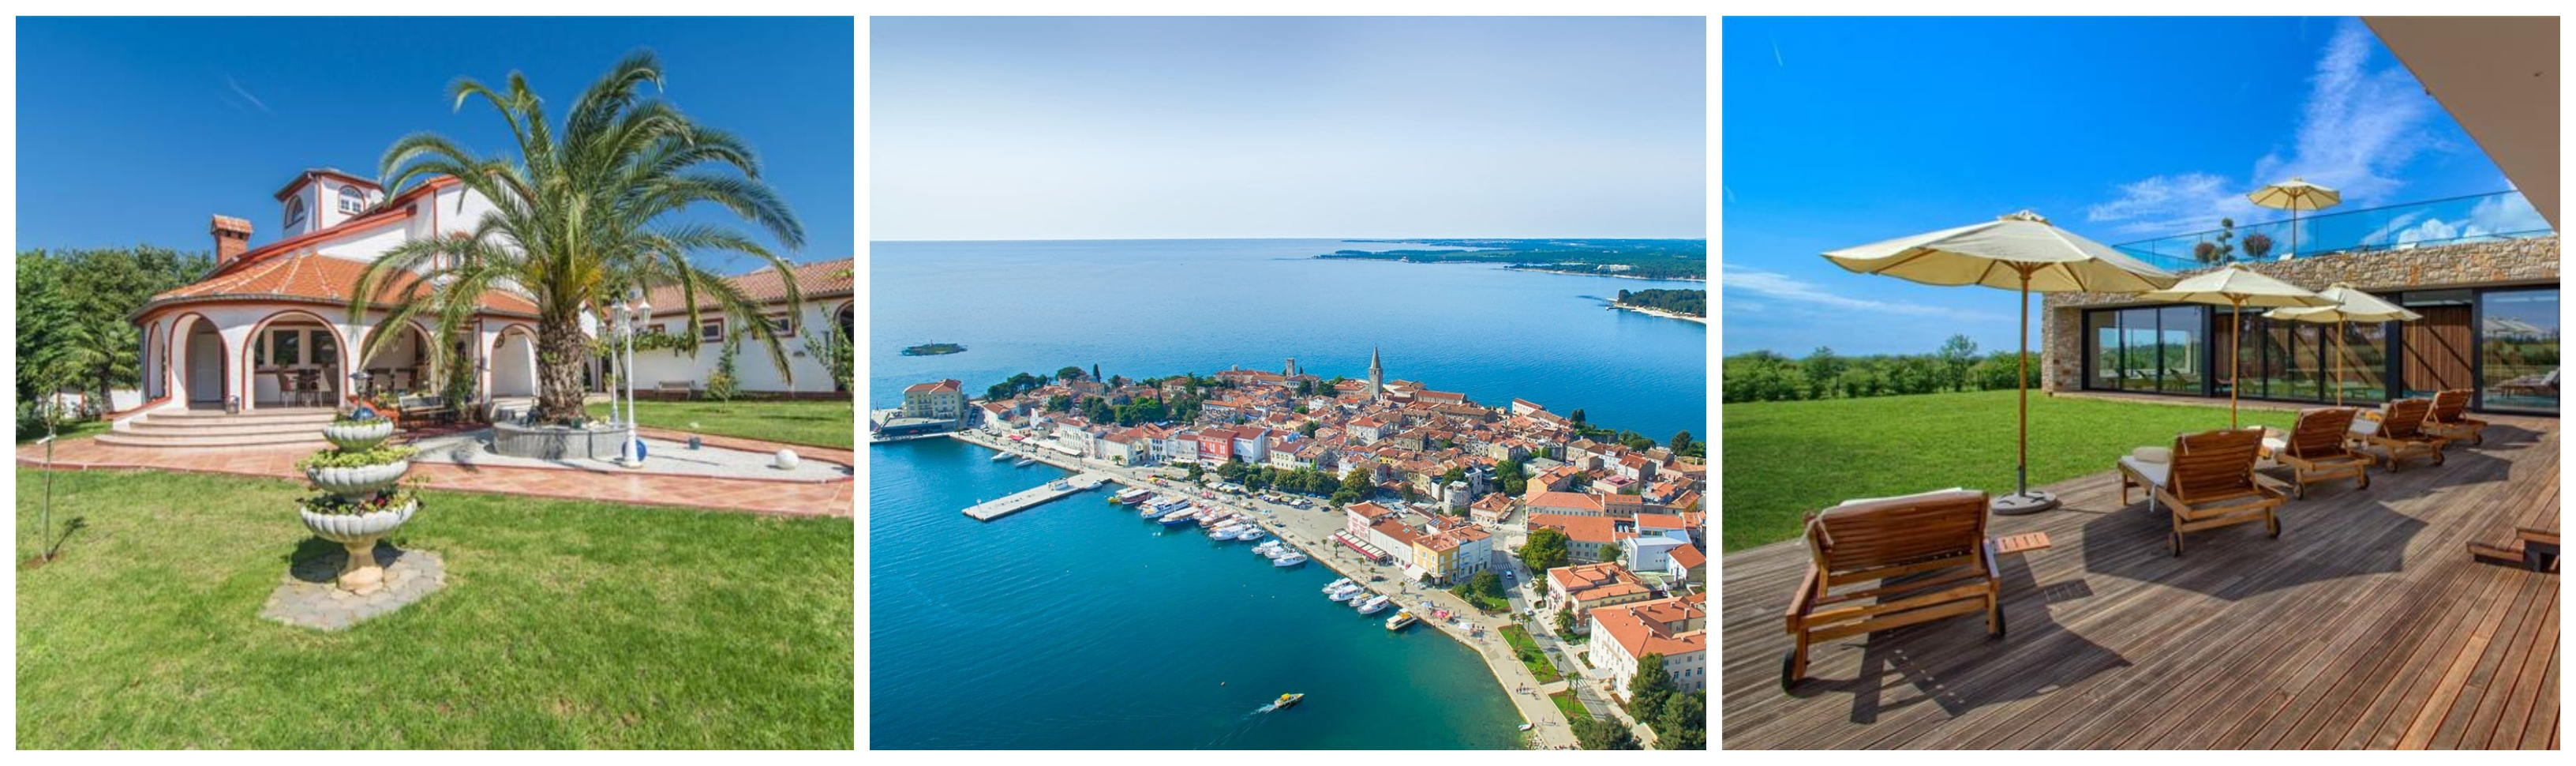 Villas in Porec